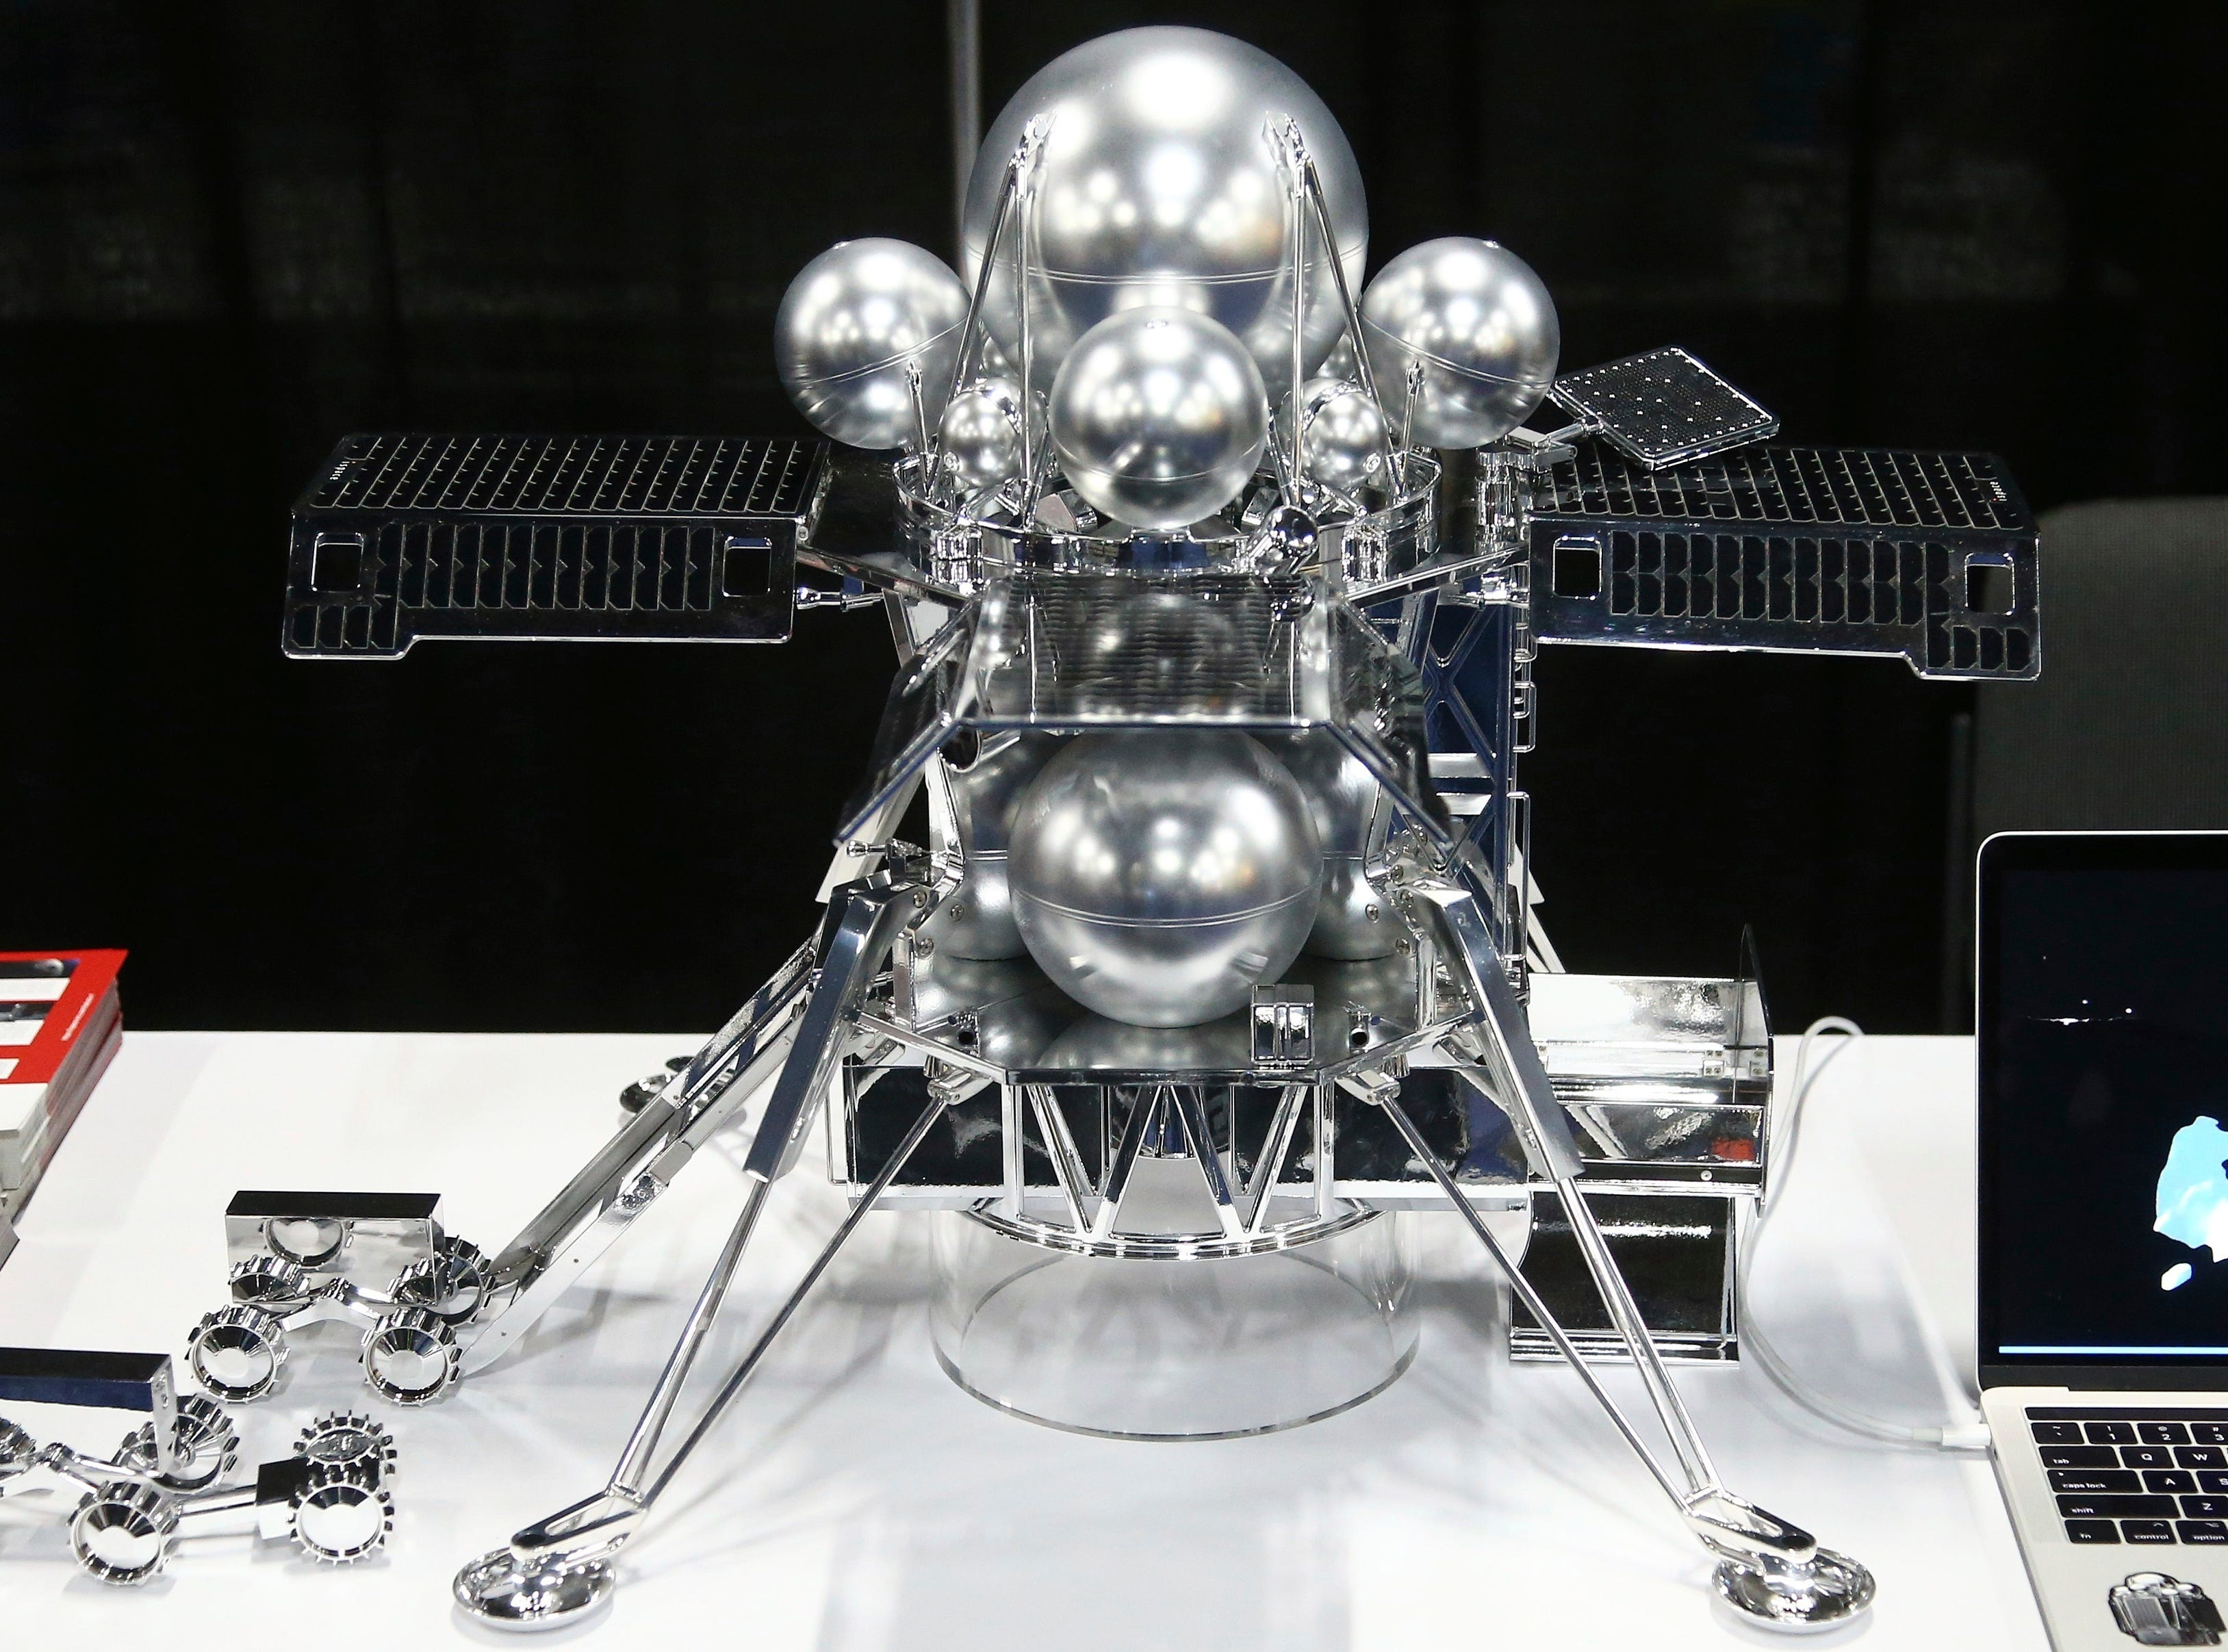 Hakuto-R shows off its lunar lander, which is scheduled to be part of the SpaceX Falcon 9 rocket for a 2020 and 2021 missions, shown here at the CES Unveiled at CES International on Sunday, Jan. 6, 2019, in Las Vegas.